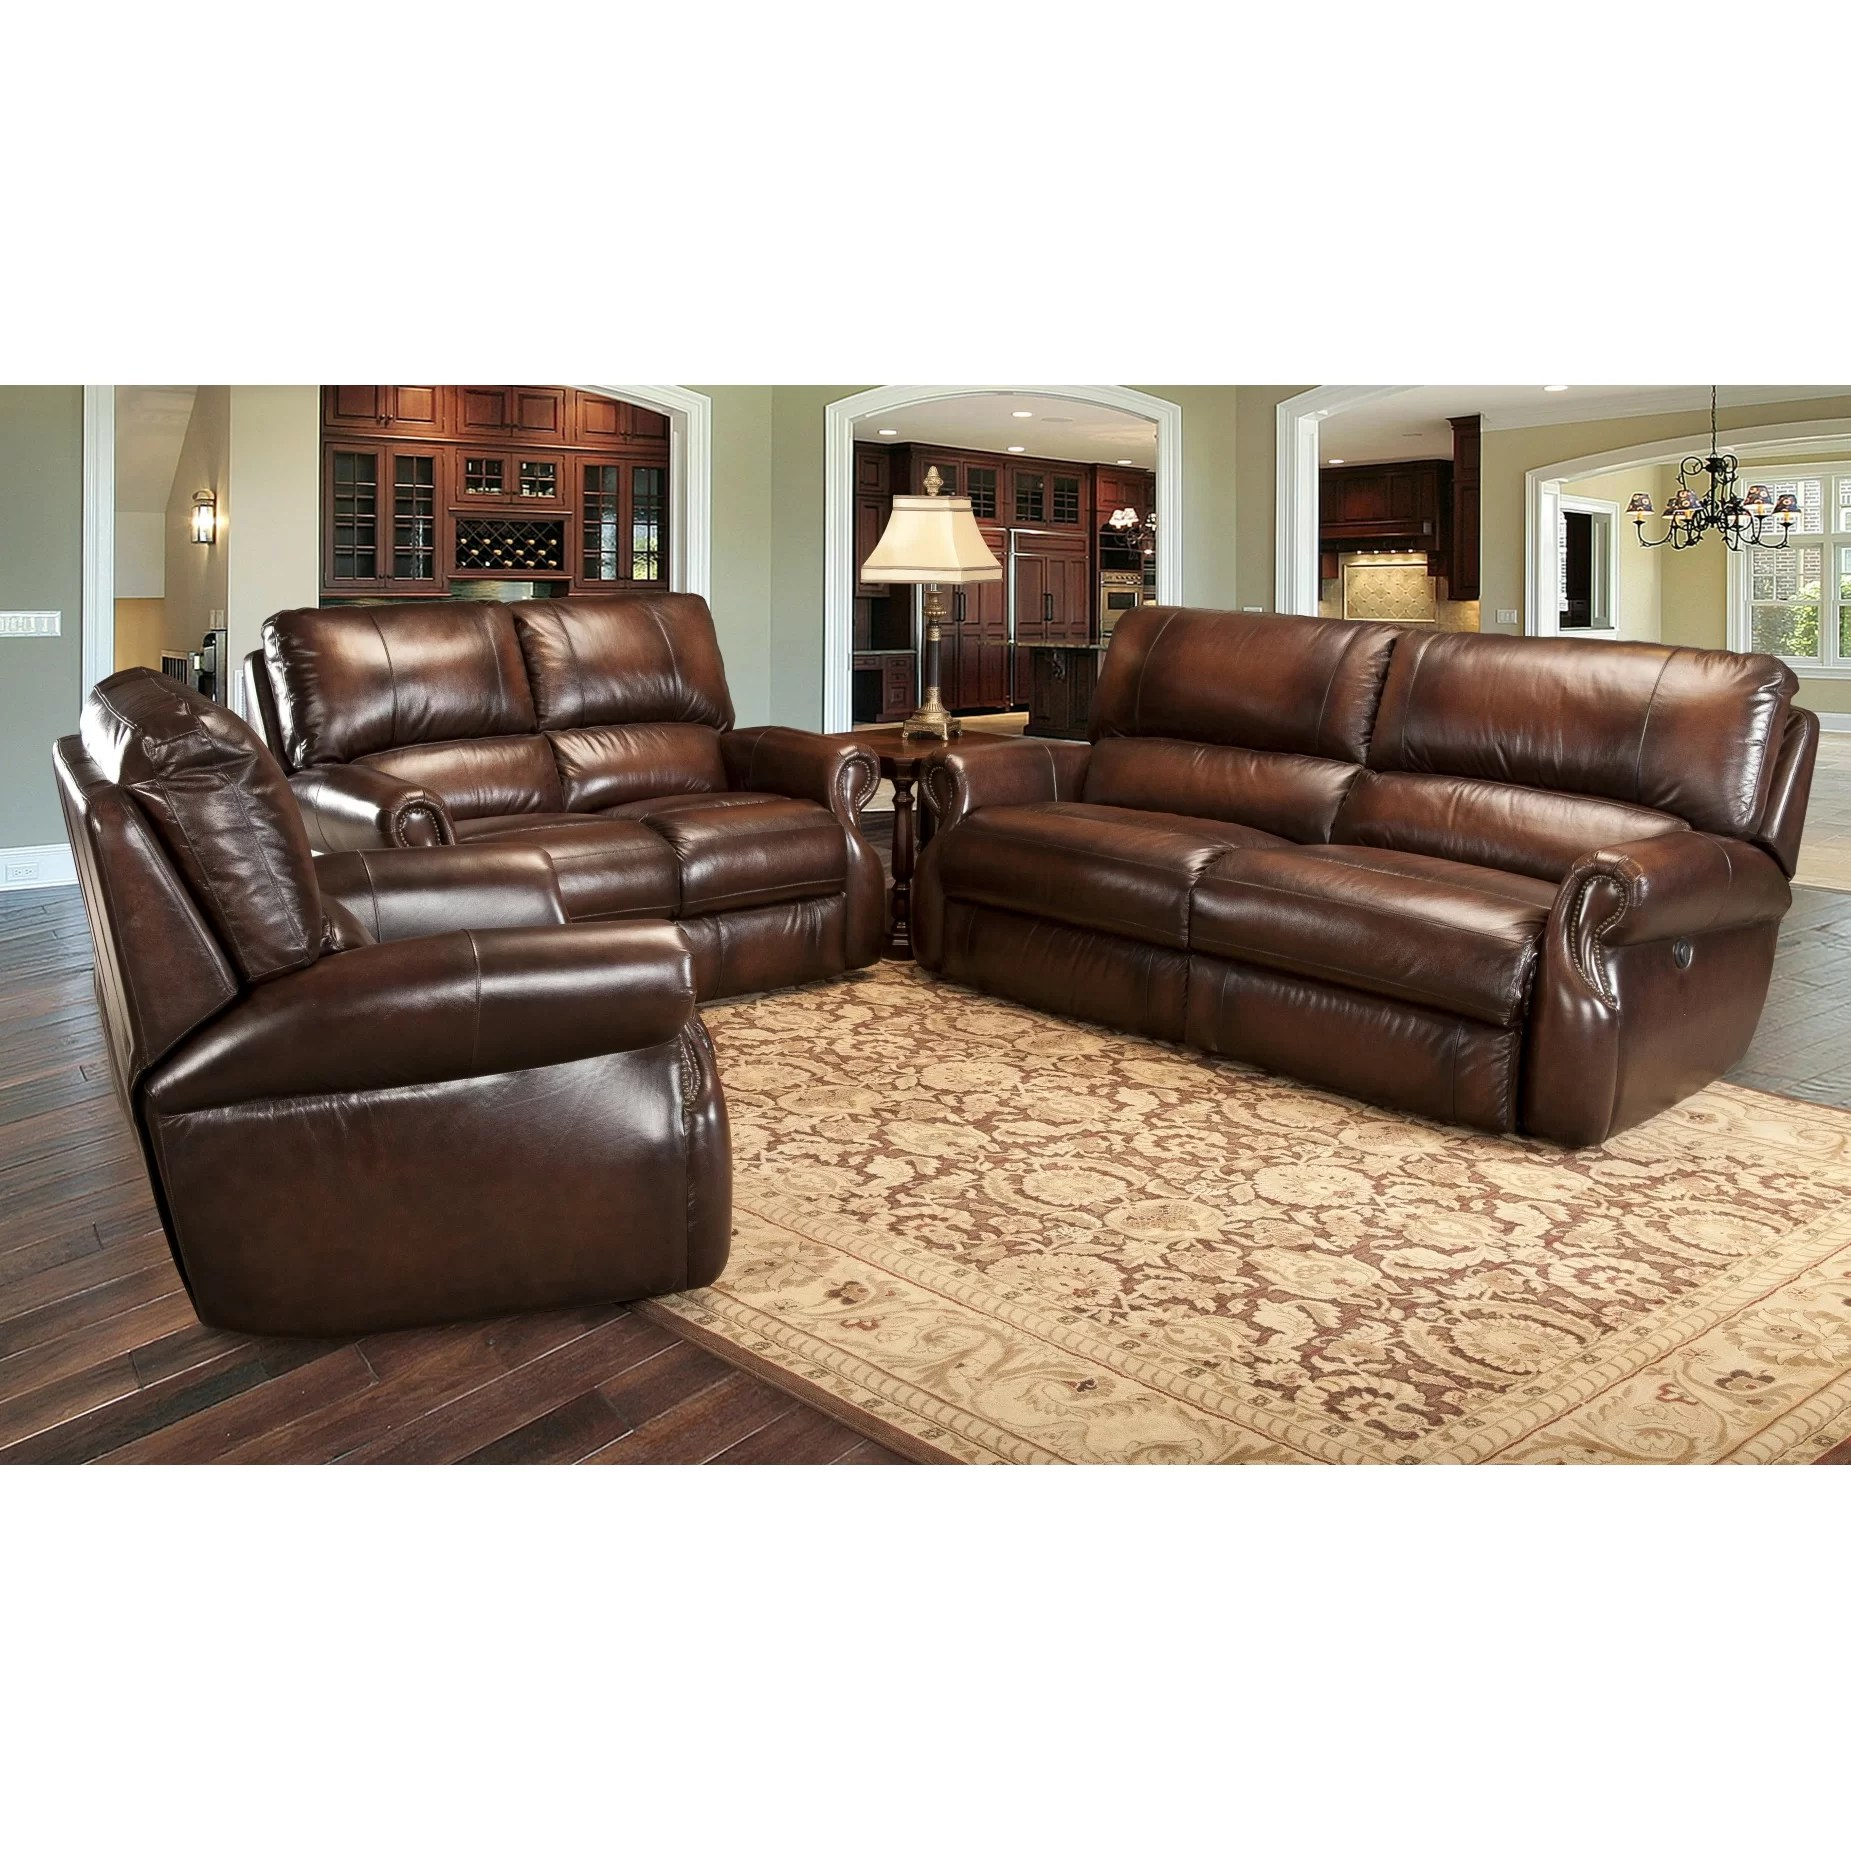 parker leather sofa reviews dfs bed review house hawthorne living room collection